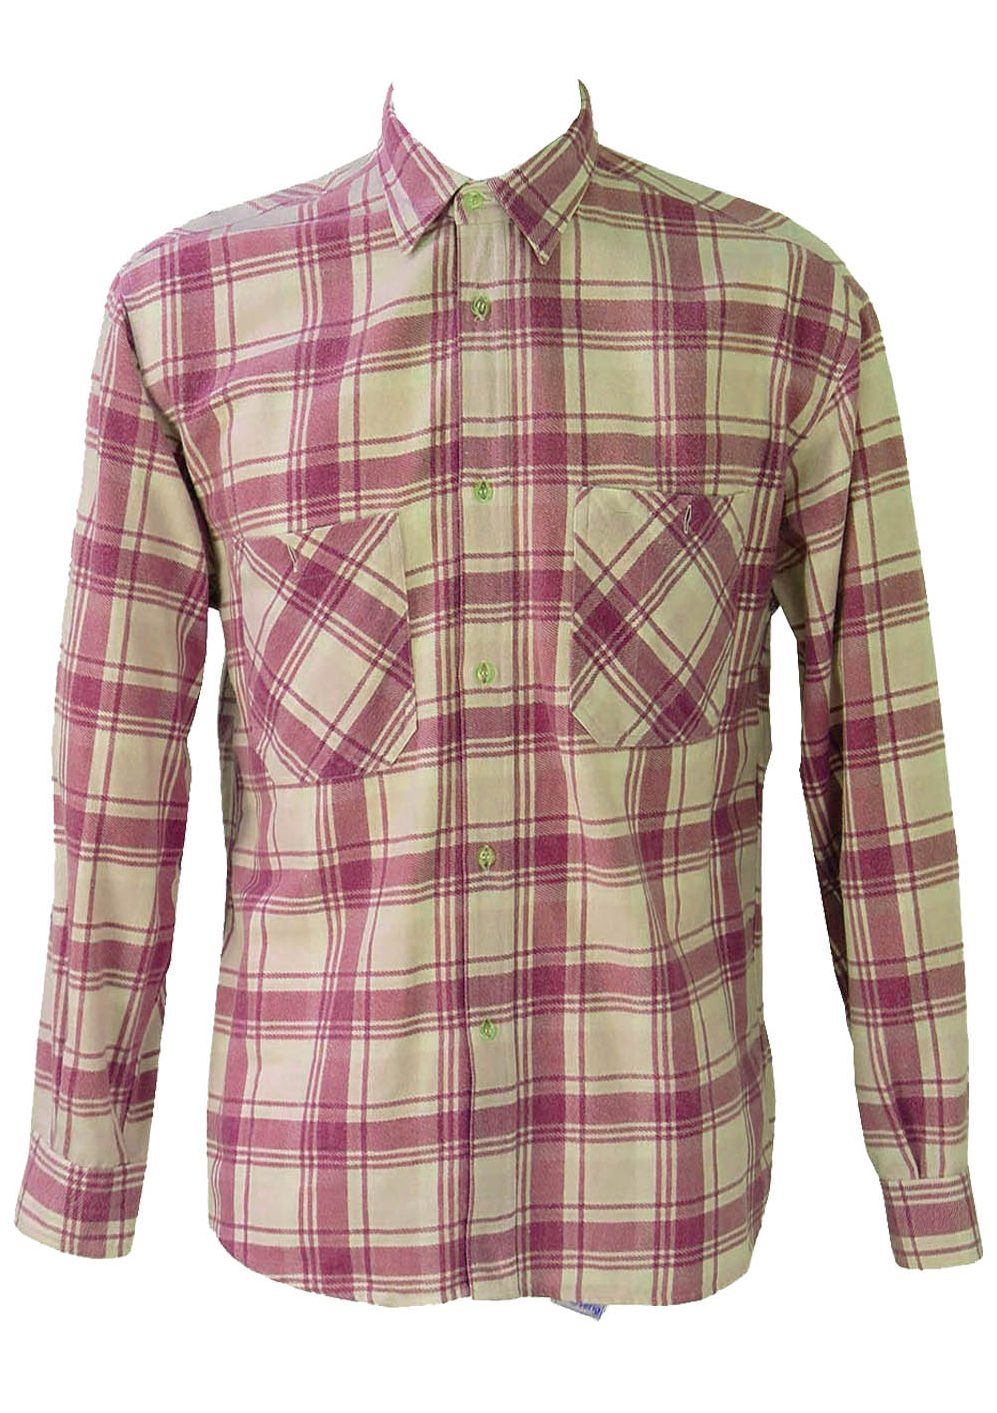 Purple And White Checked Flannel Shirt L Reign Vintage